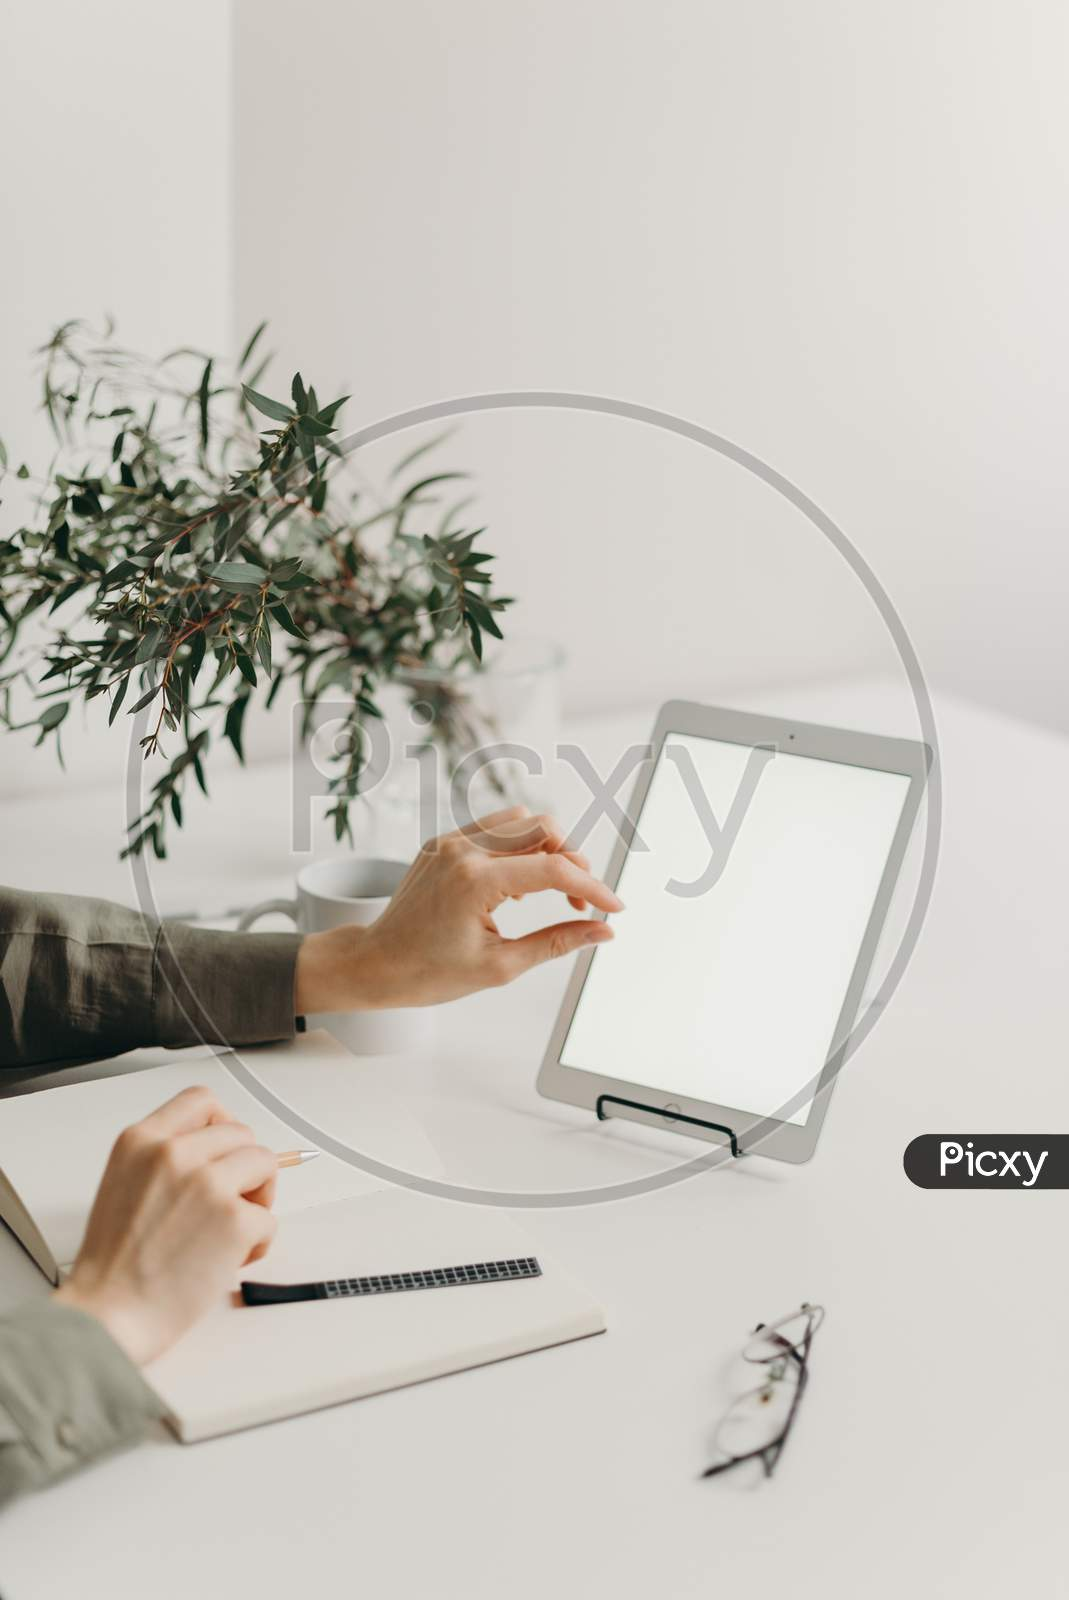 Transparent material tablet and furniture